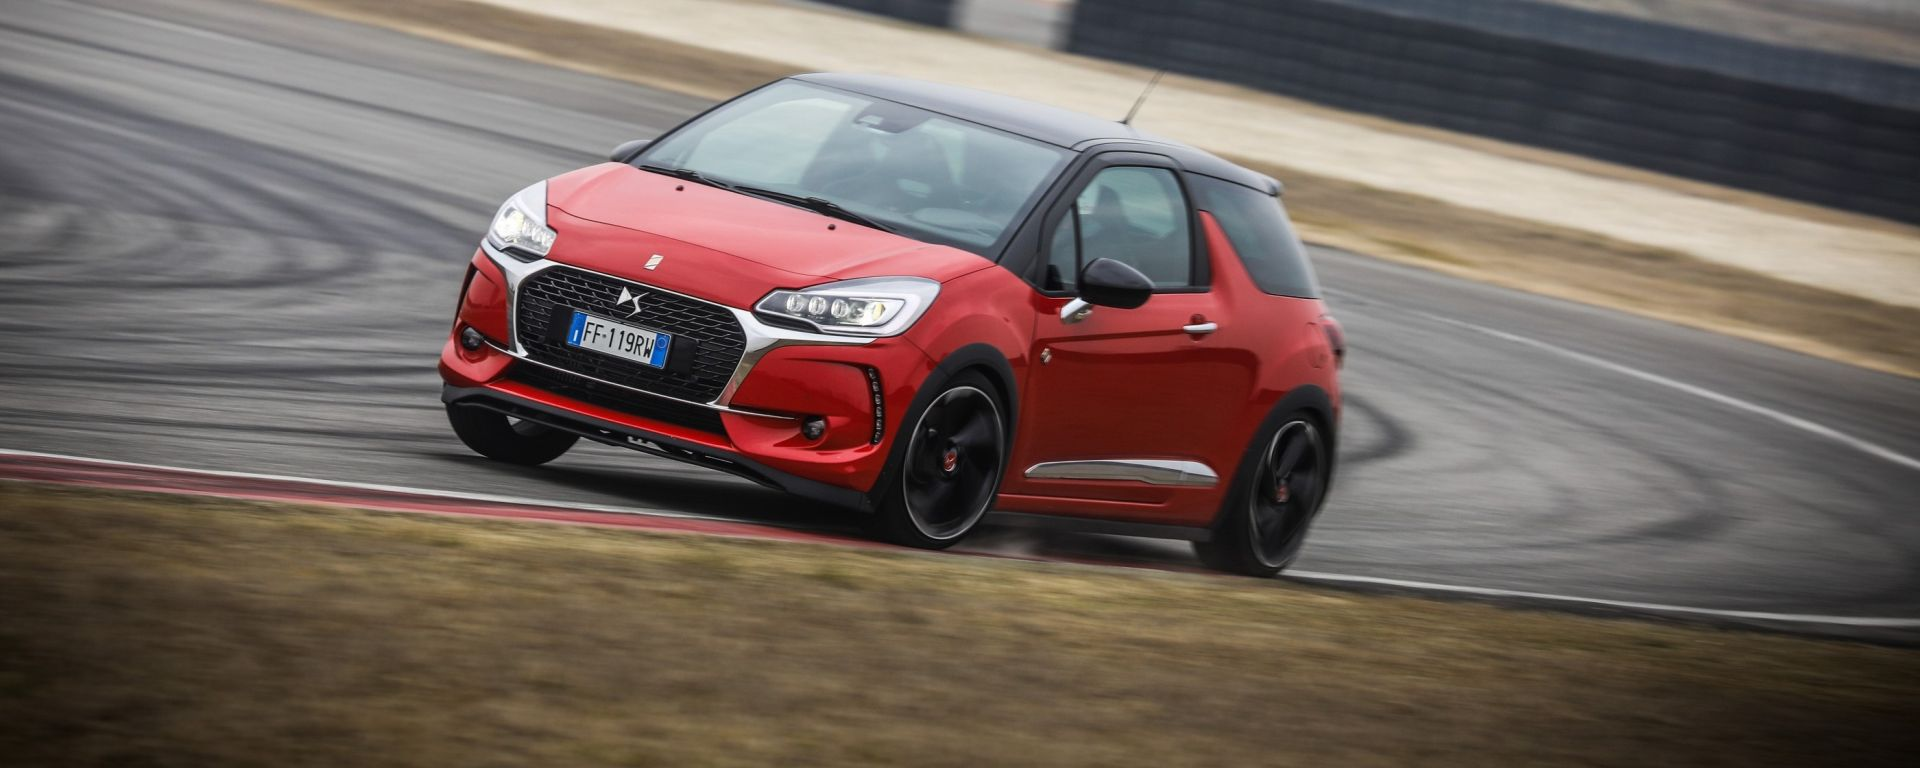 DS 3 Performance: la piccola peste francese in pista